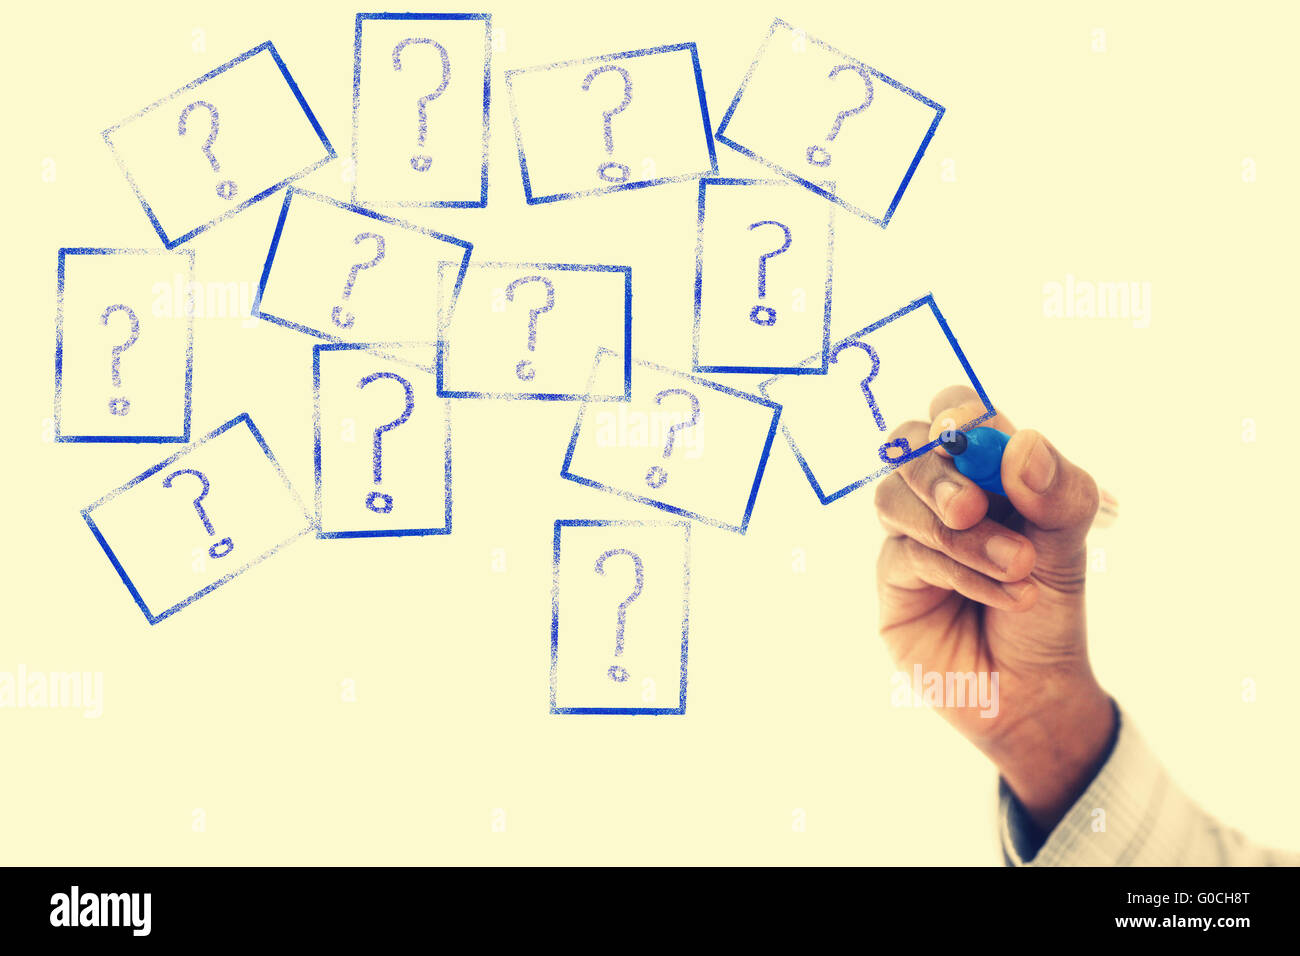 Many Question Marks are drawn on transparent wipe board - Stock Image